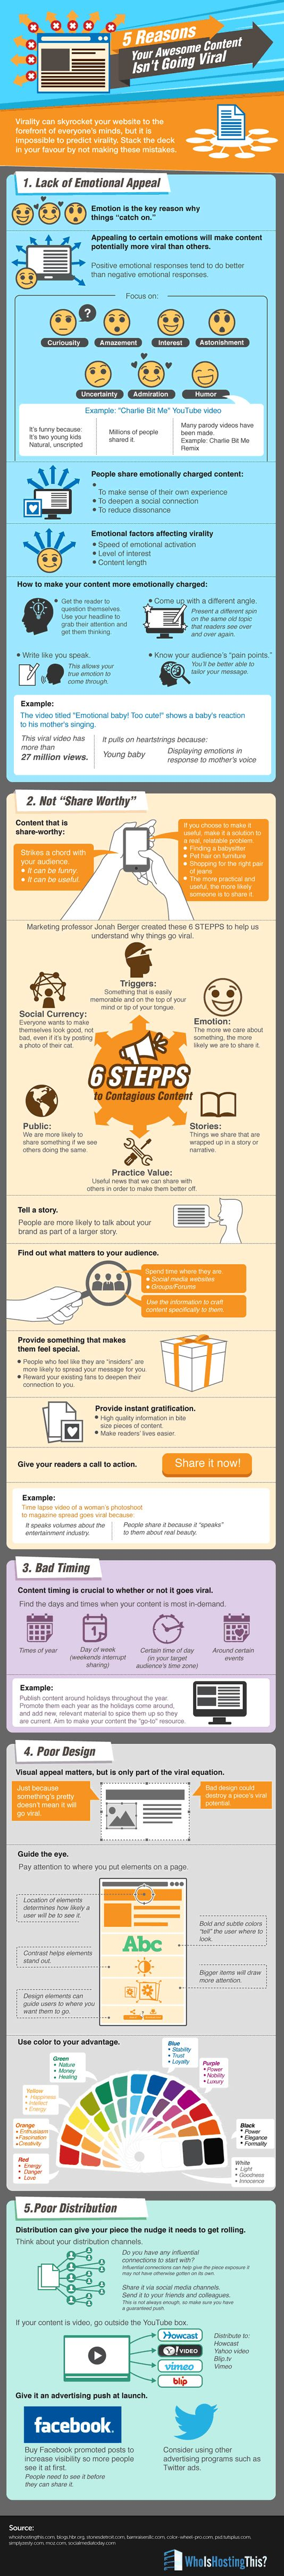 5 reasons content is not going viral